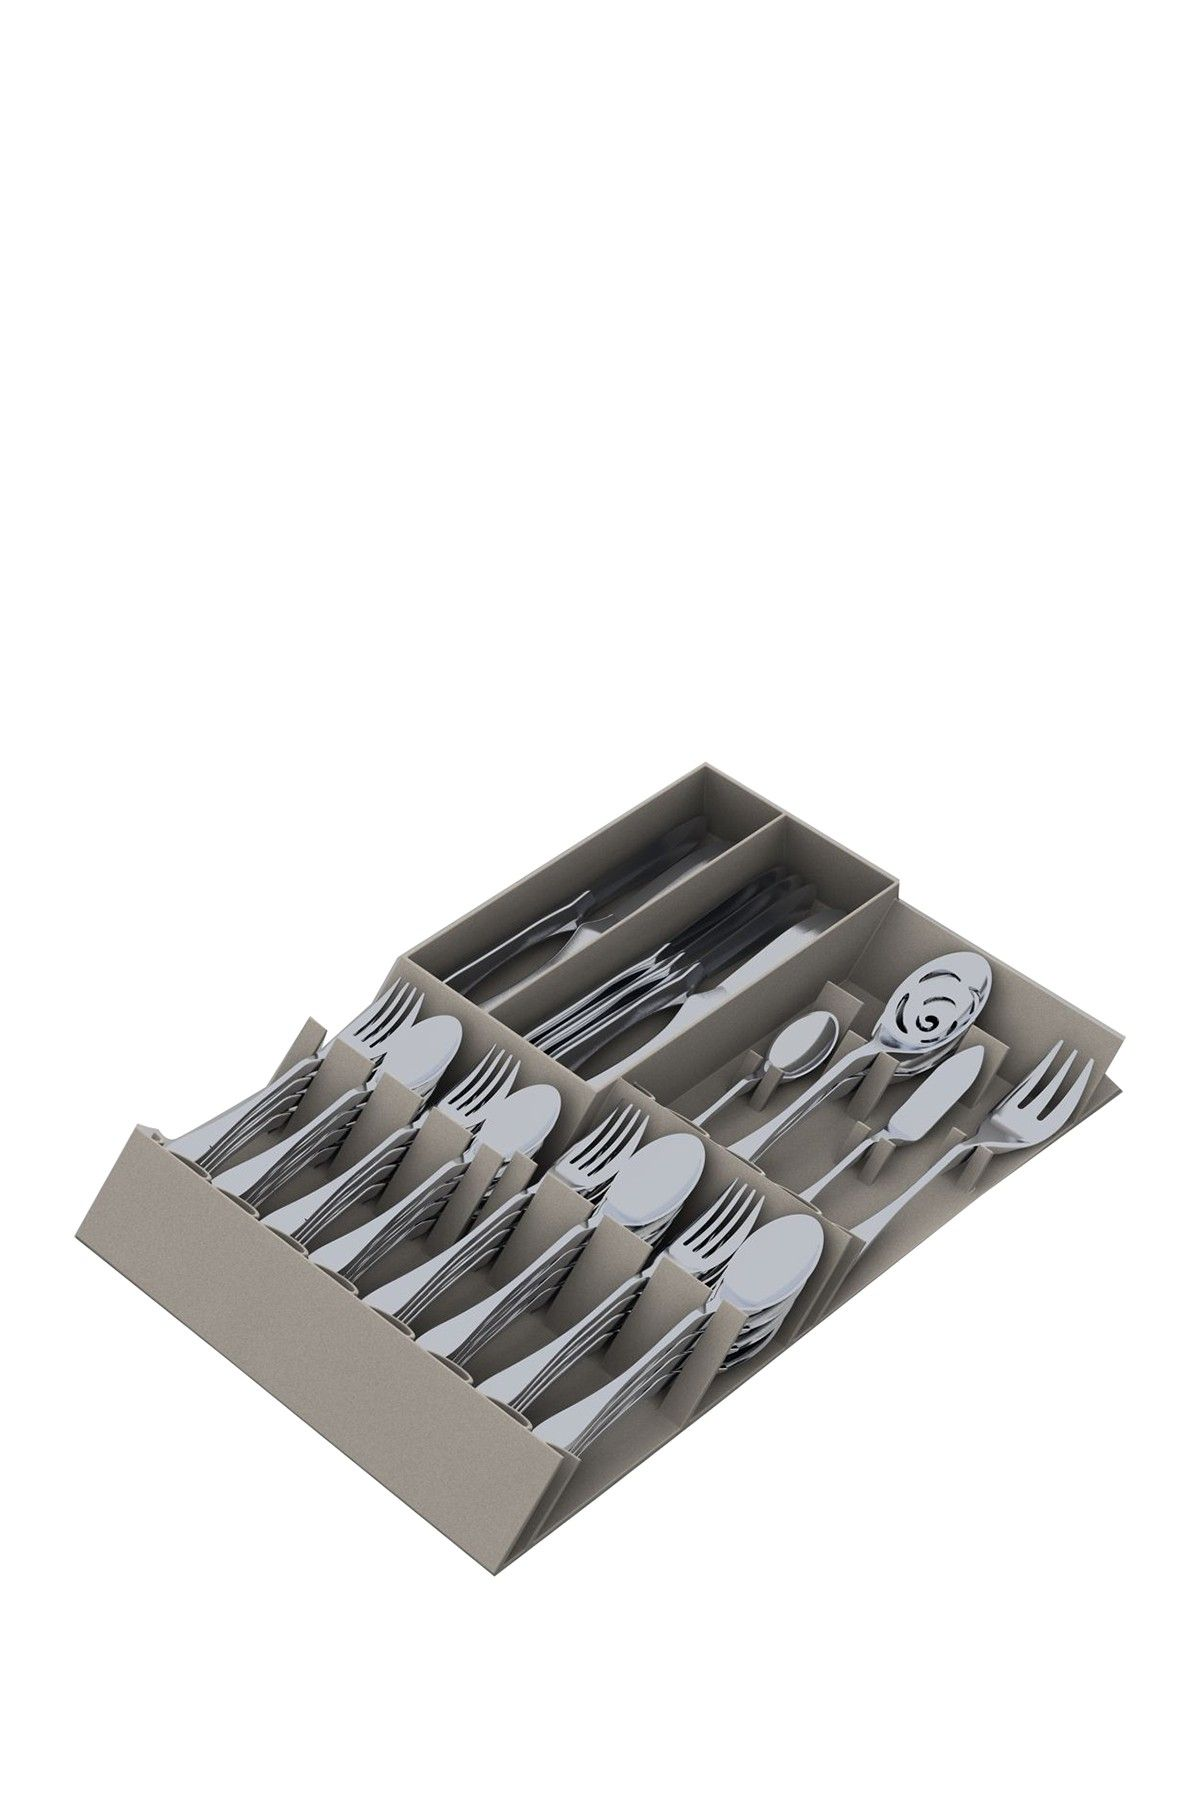 Knork Flatware Storage Tray